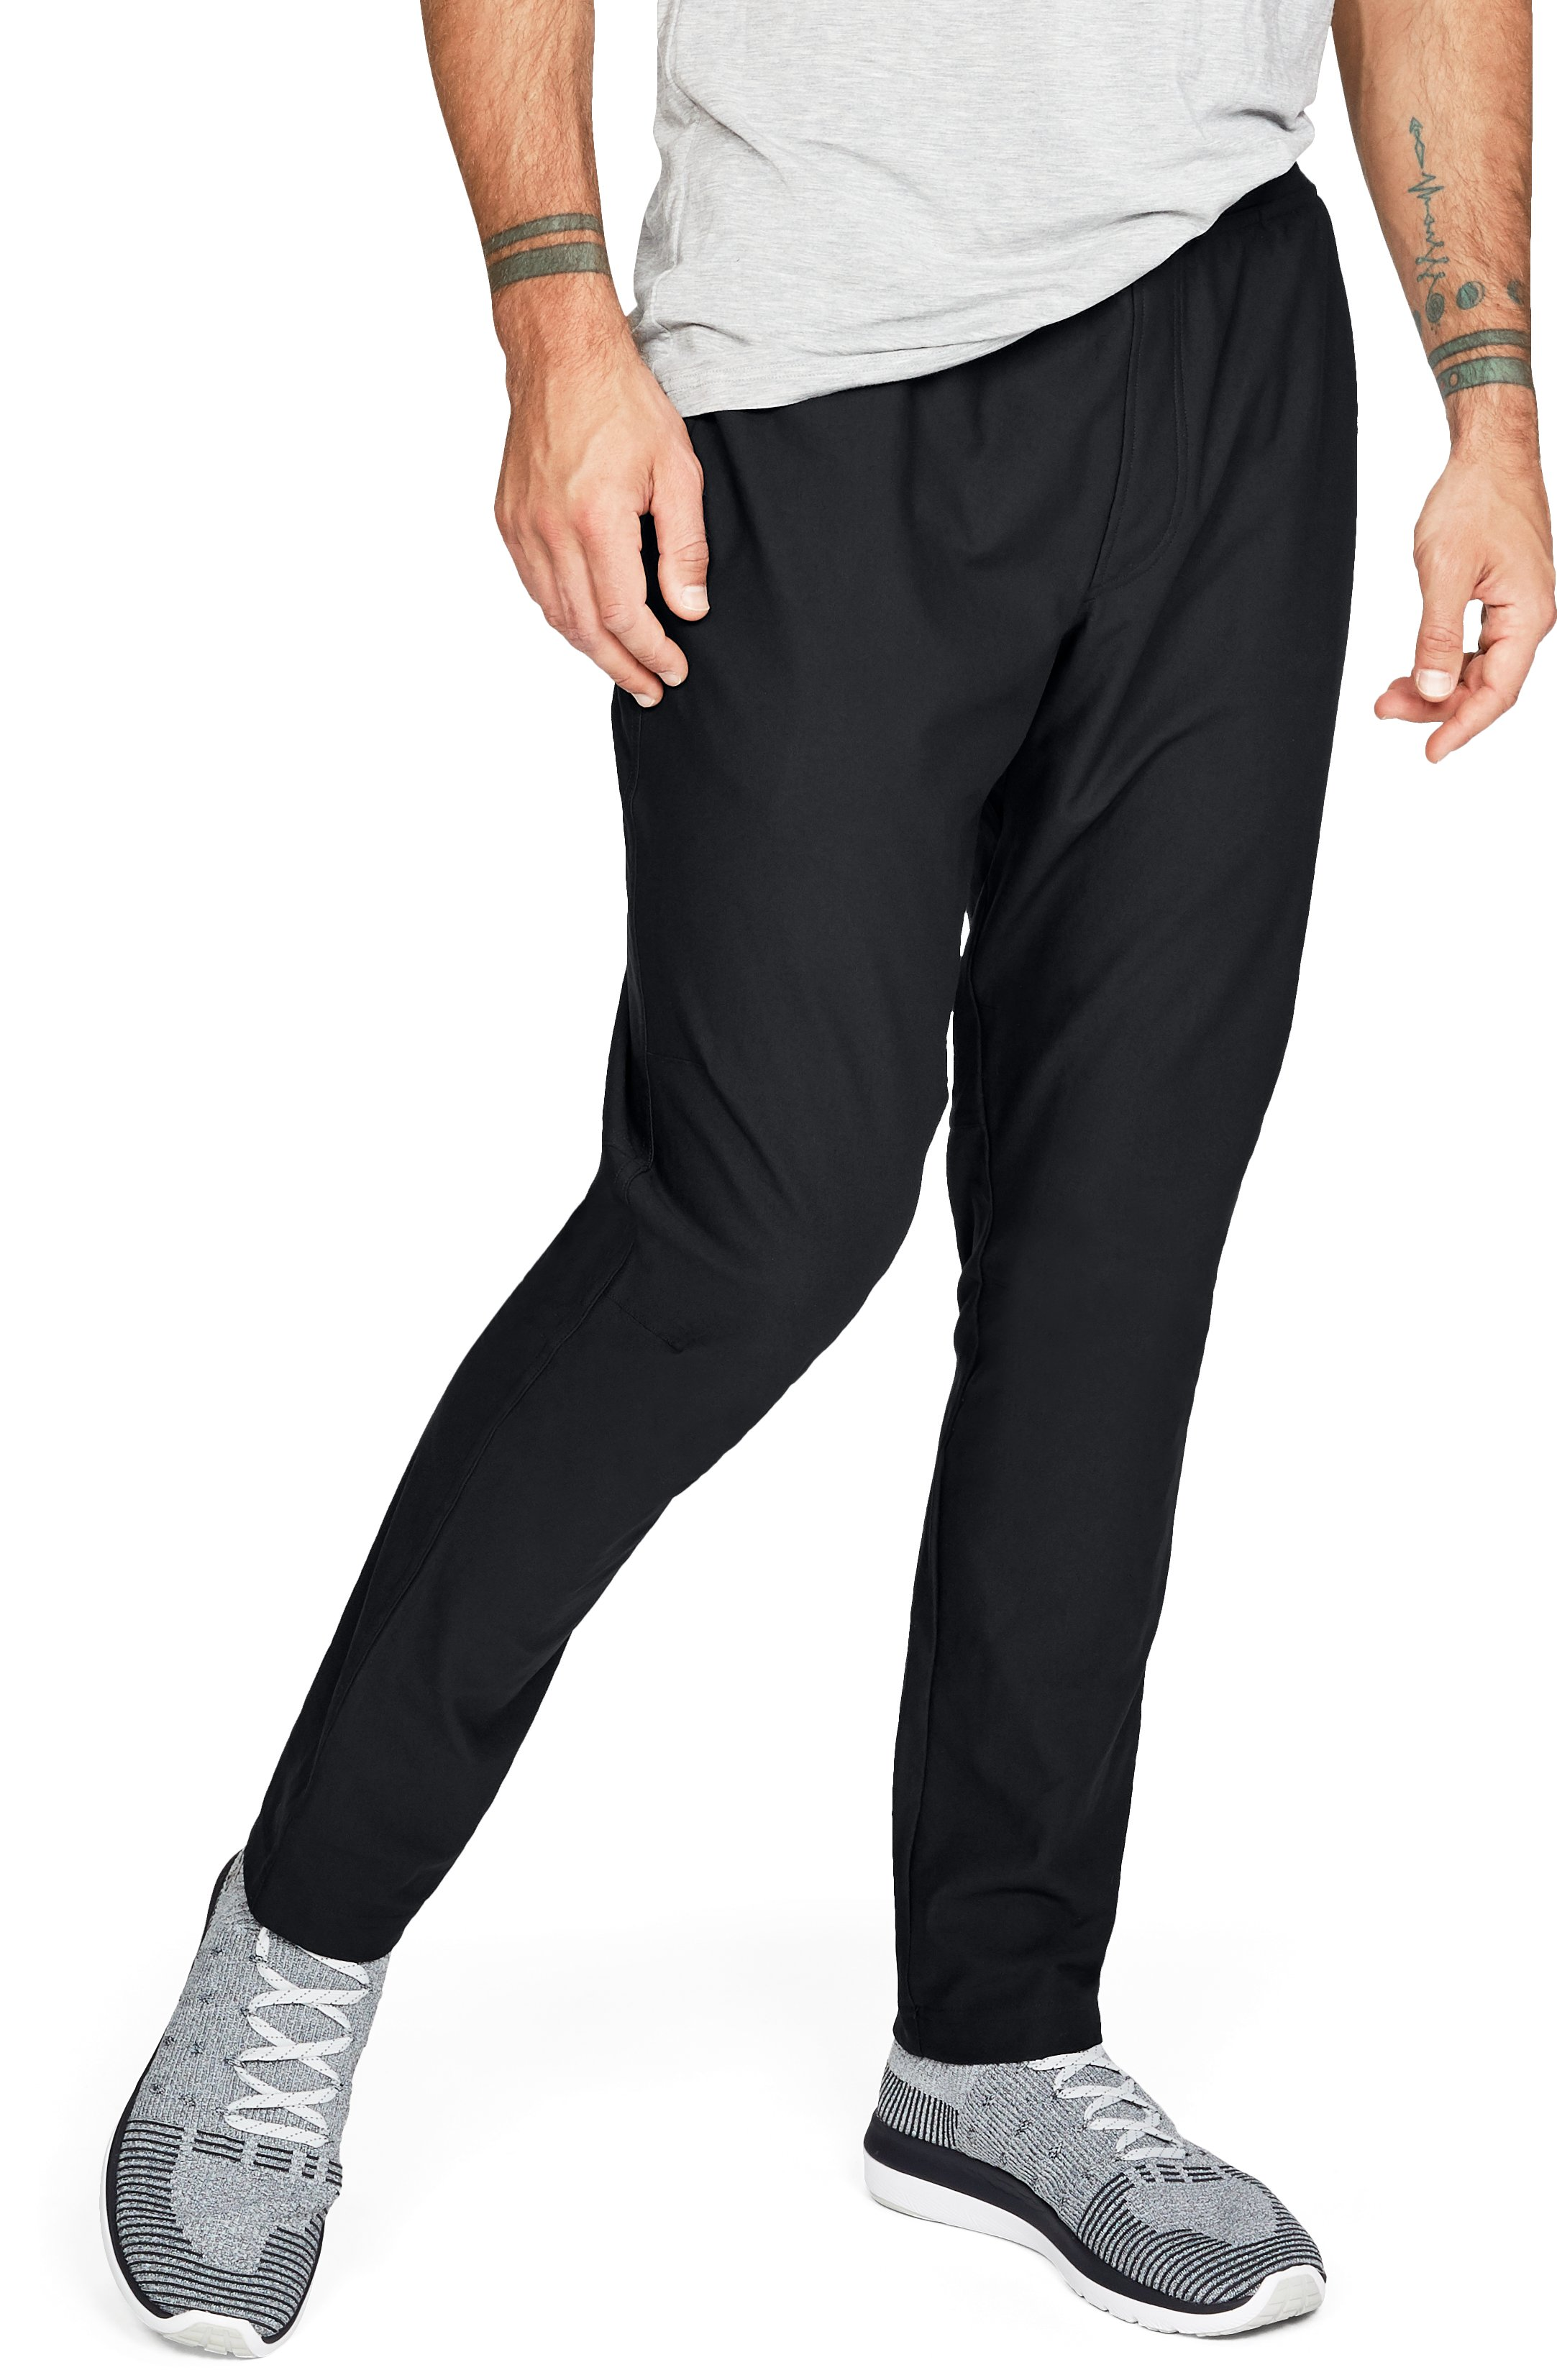 Men's Athlete Recovery Track Pants, Black